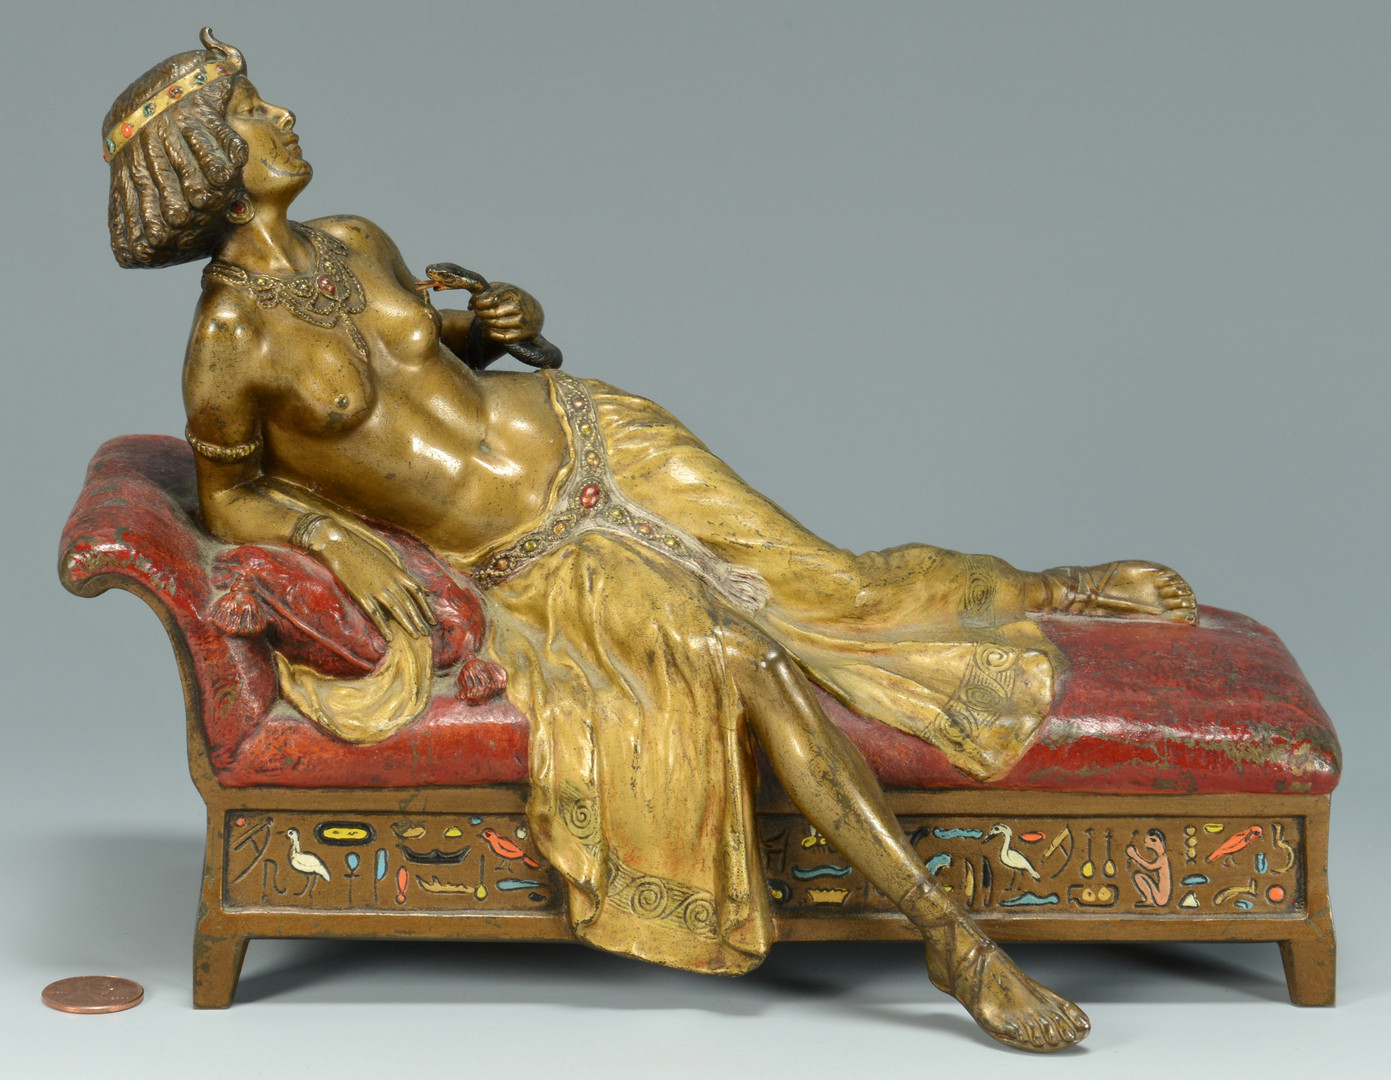 Lot 63: Franz Bergmann, Sacrifice of Cleopatra